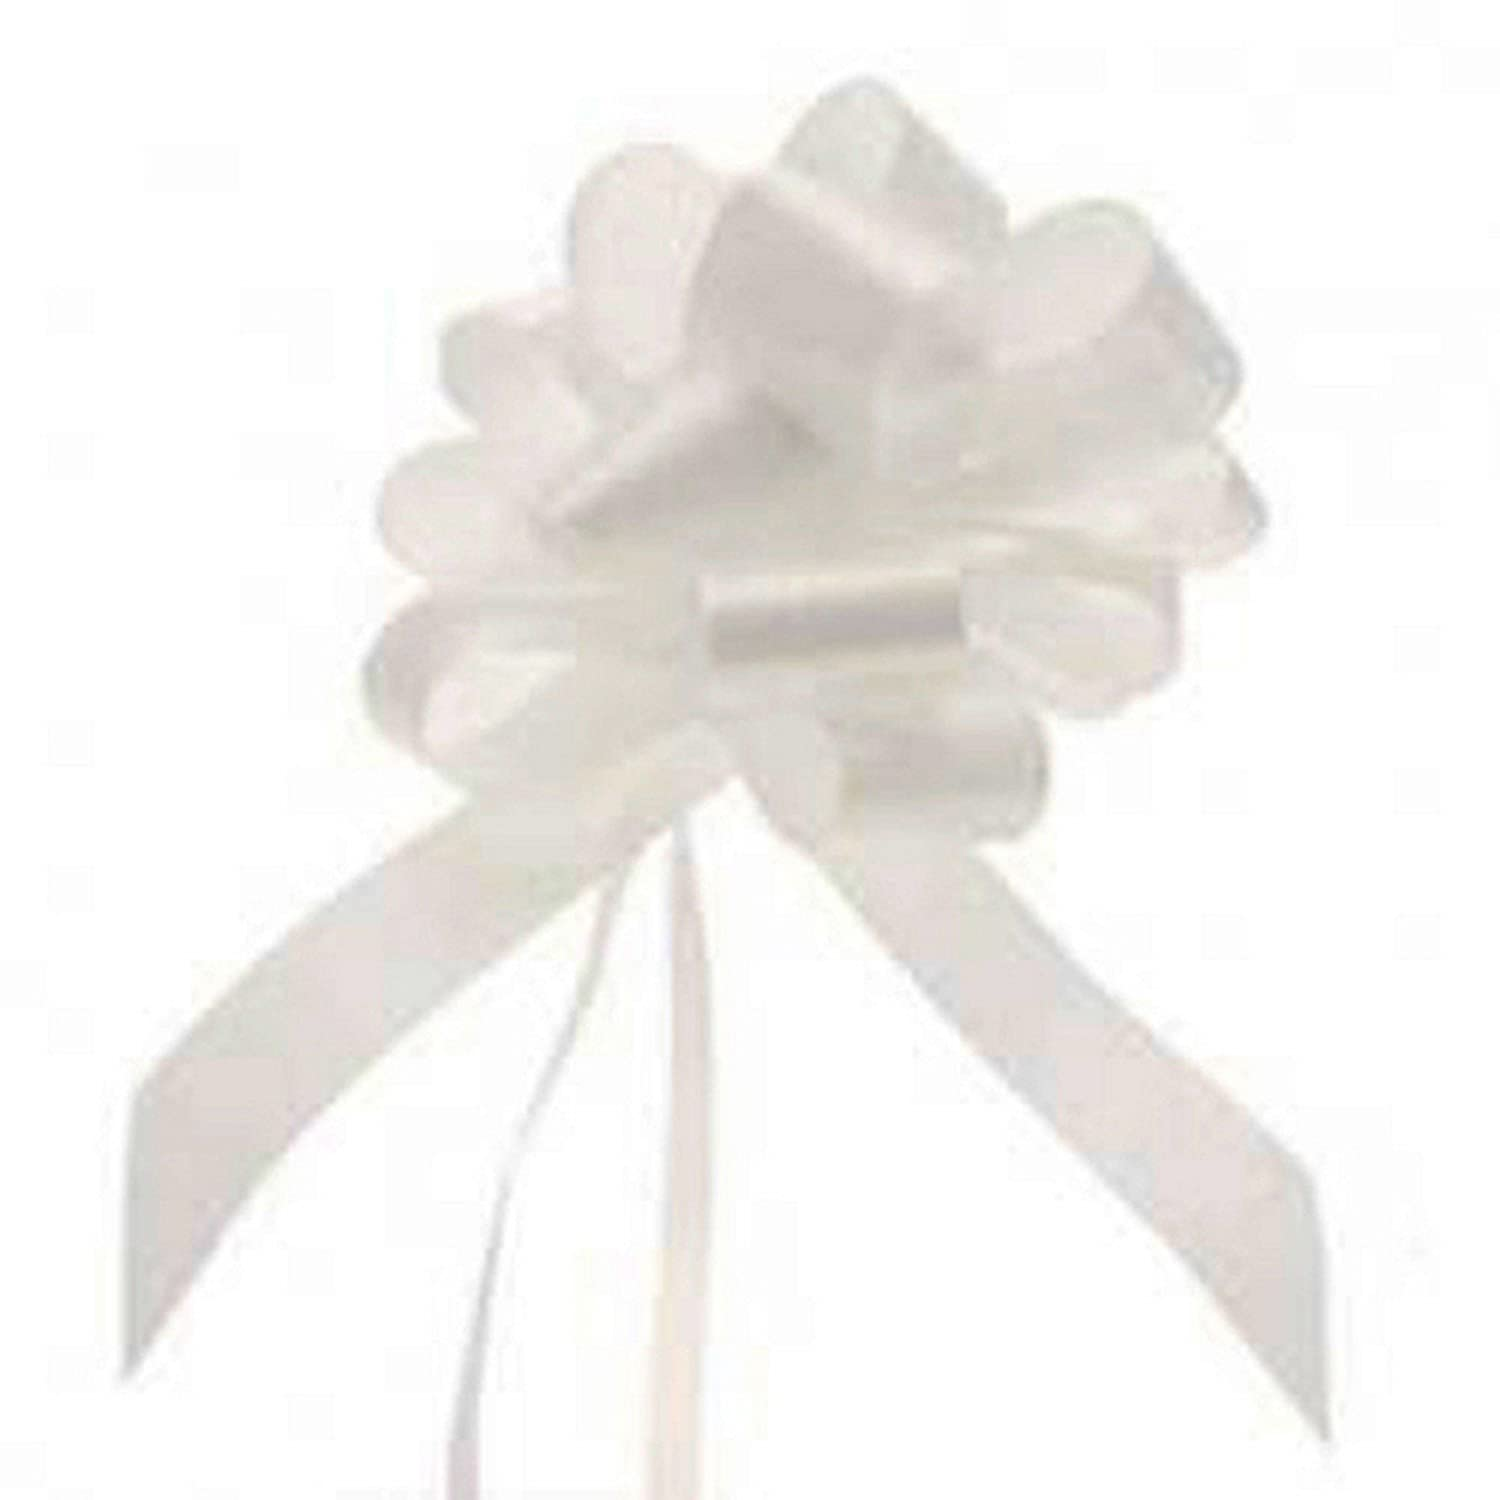 30 Snow White Satin Ribbon Floristry Pull Bows 30mm Smithers Oasis 60100